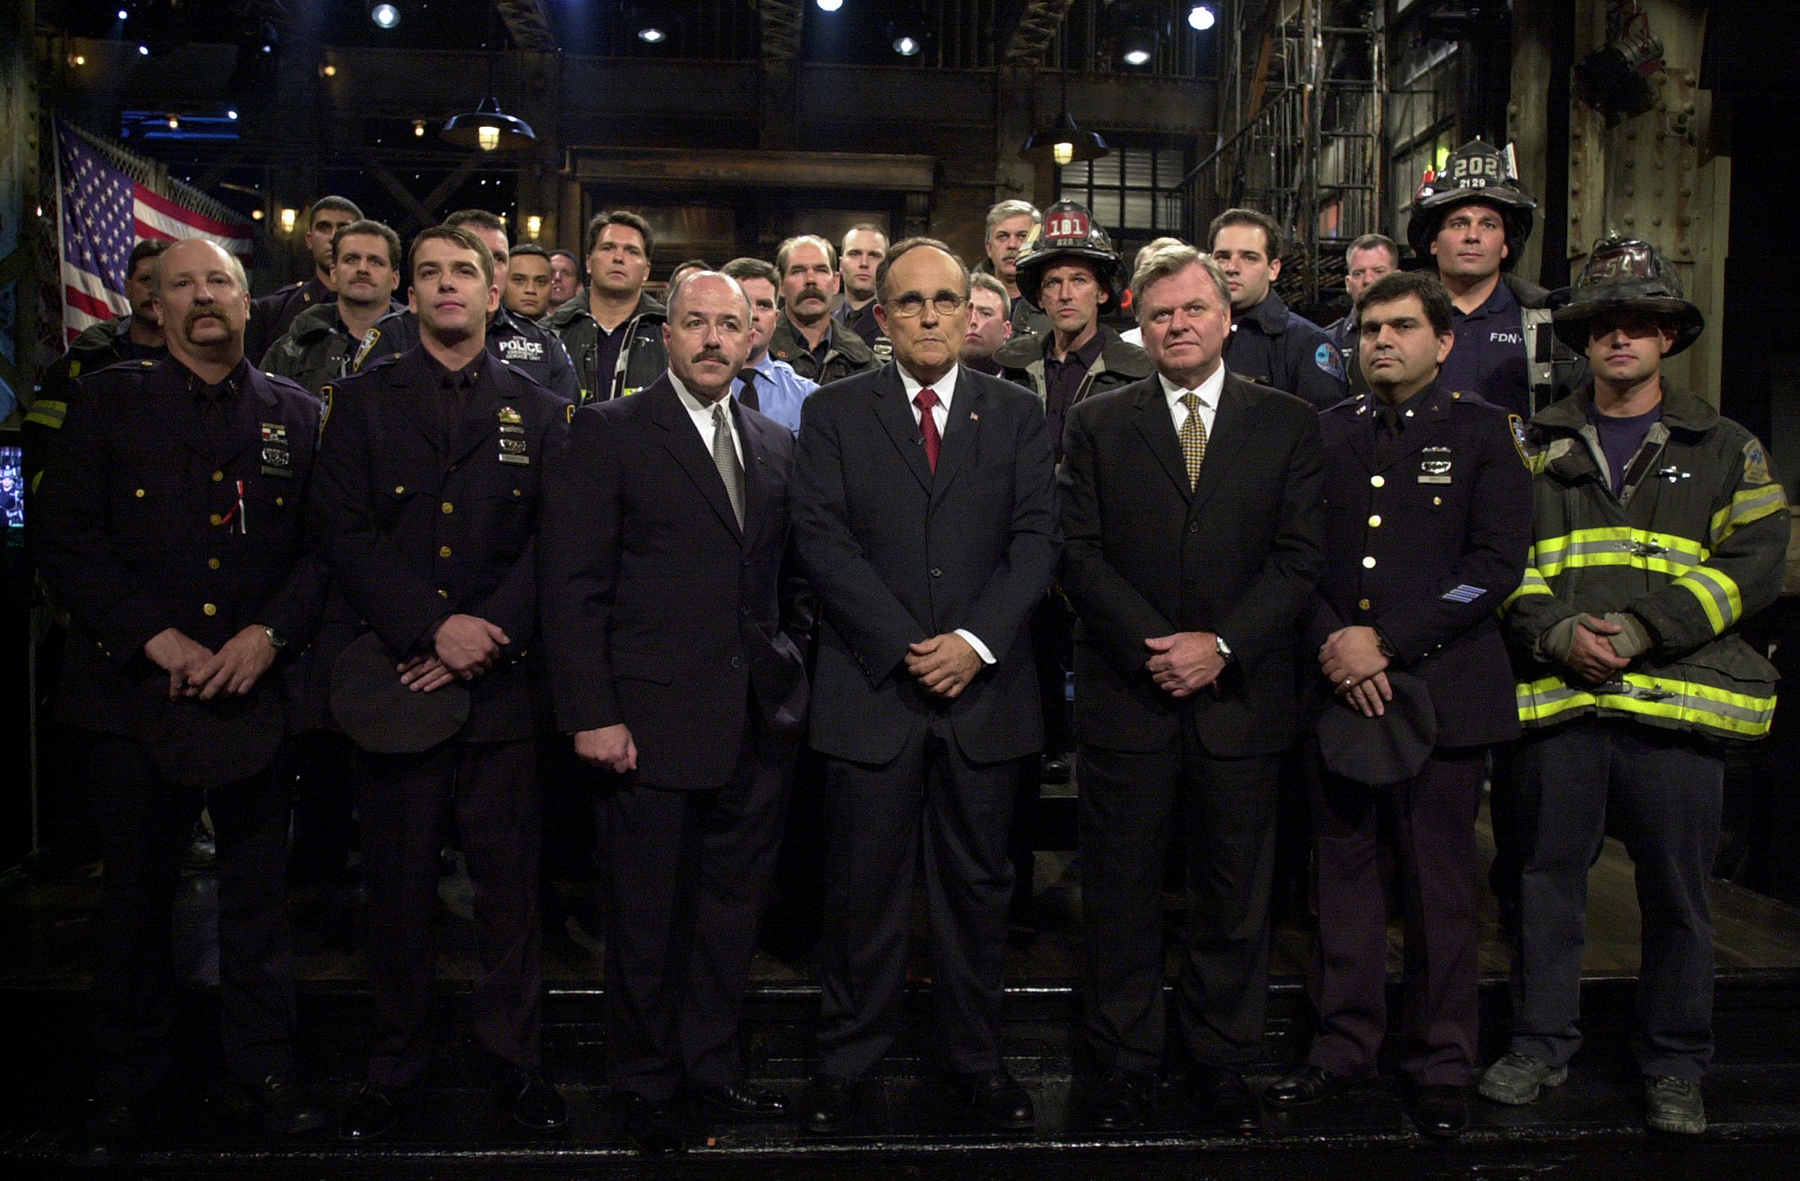 """SATURDAY NIGHT LIVE -- Episode 1 -- Air Date 09/29/2001 -- Pictured: Members of ththe New York Fire Department, New York Police Department, Port Authority Police Department, with (center, l-r) Police Commissioner Bernard Kerik, Mayor Rudolph Guiliani, Fire Commissioner Tom Von Essen during the """"9/11 Tribute"""" on September 29, 2001 -- Photo by: Dana Edelson/NBCU Photo Bank"""